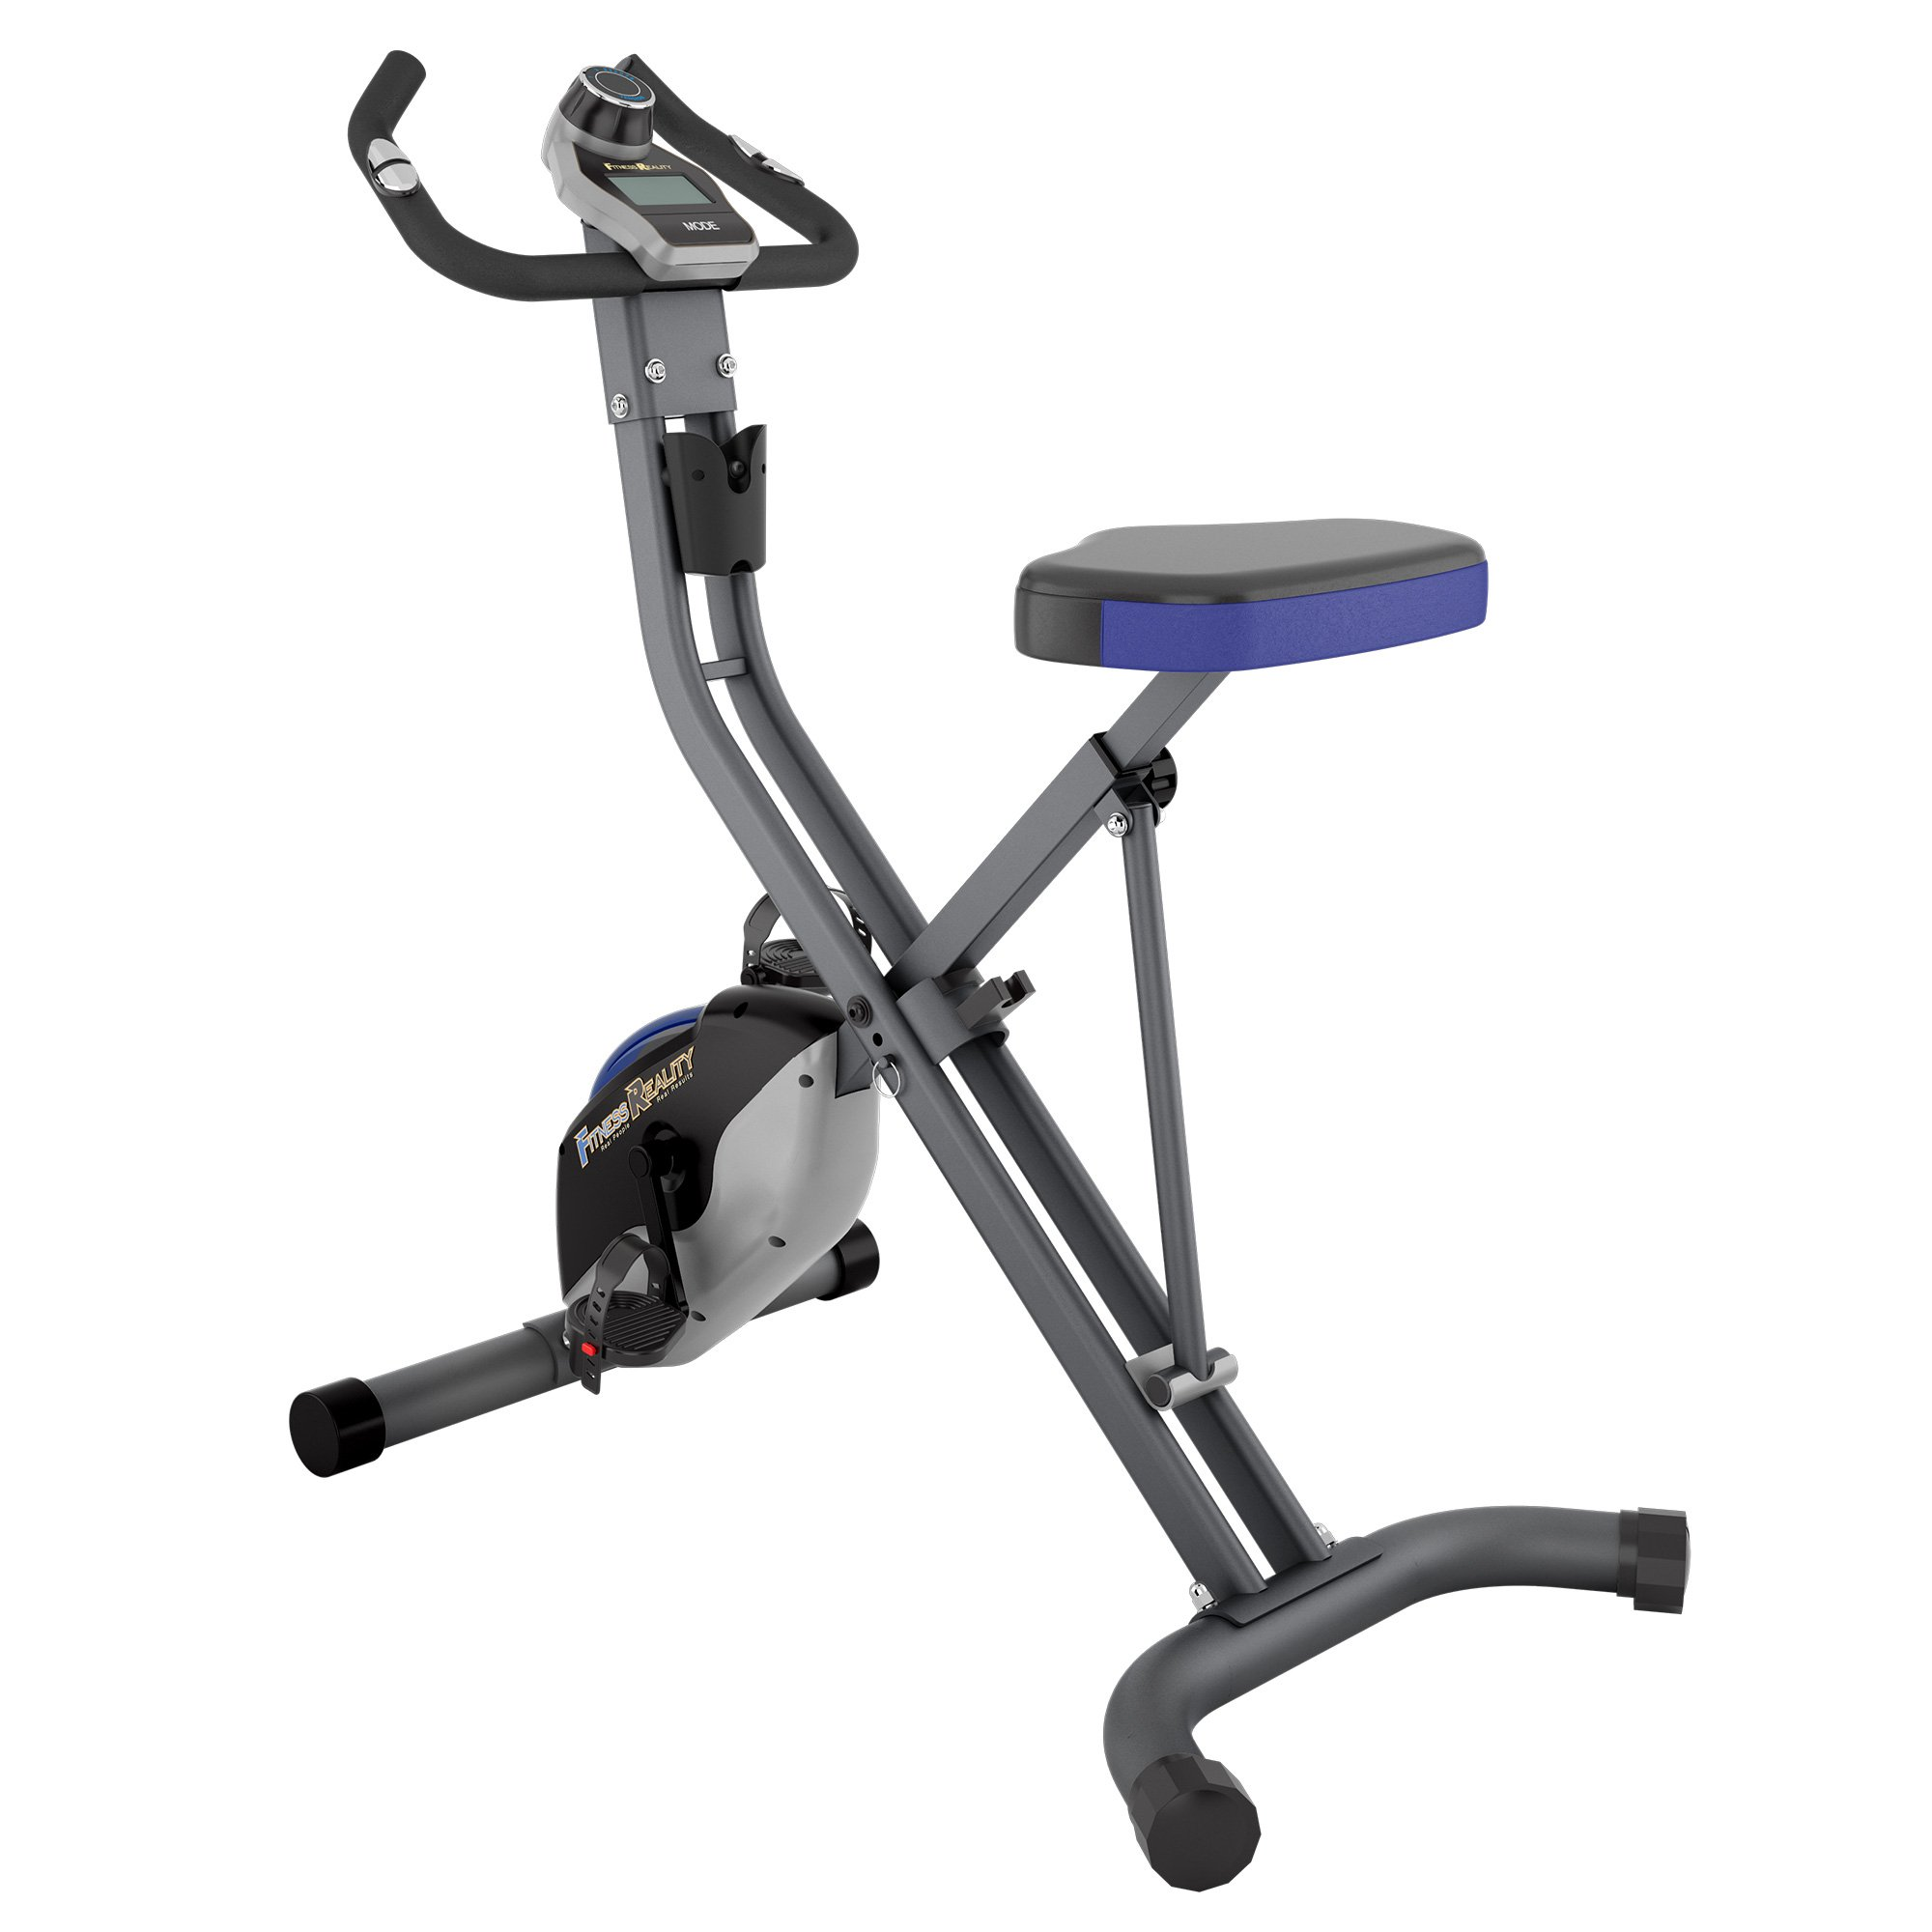 Fitness Reality U2500 Super Max Foldable Magnetic Upright Bike, 400 Lbs by Fitness Reality (Image #2)